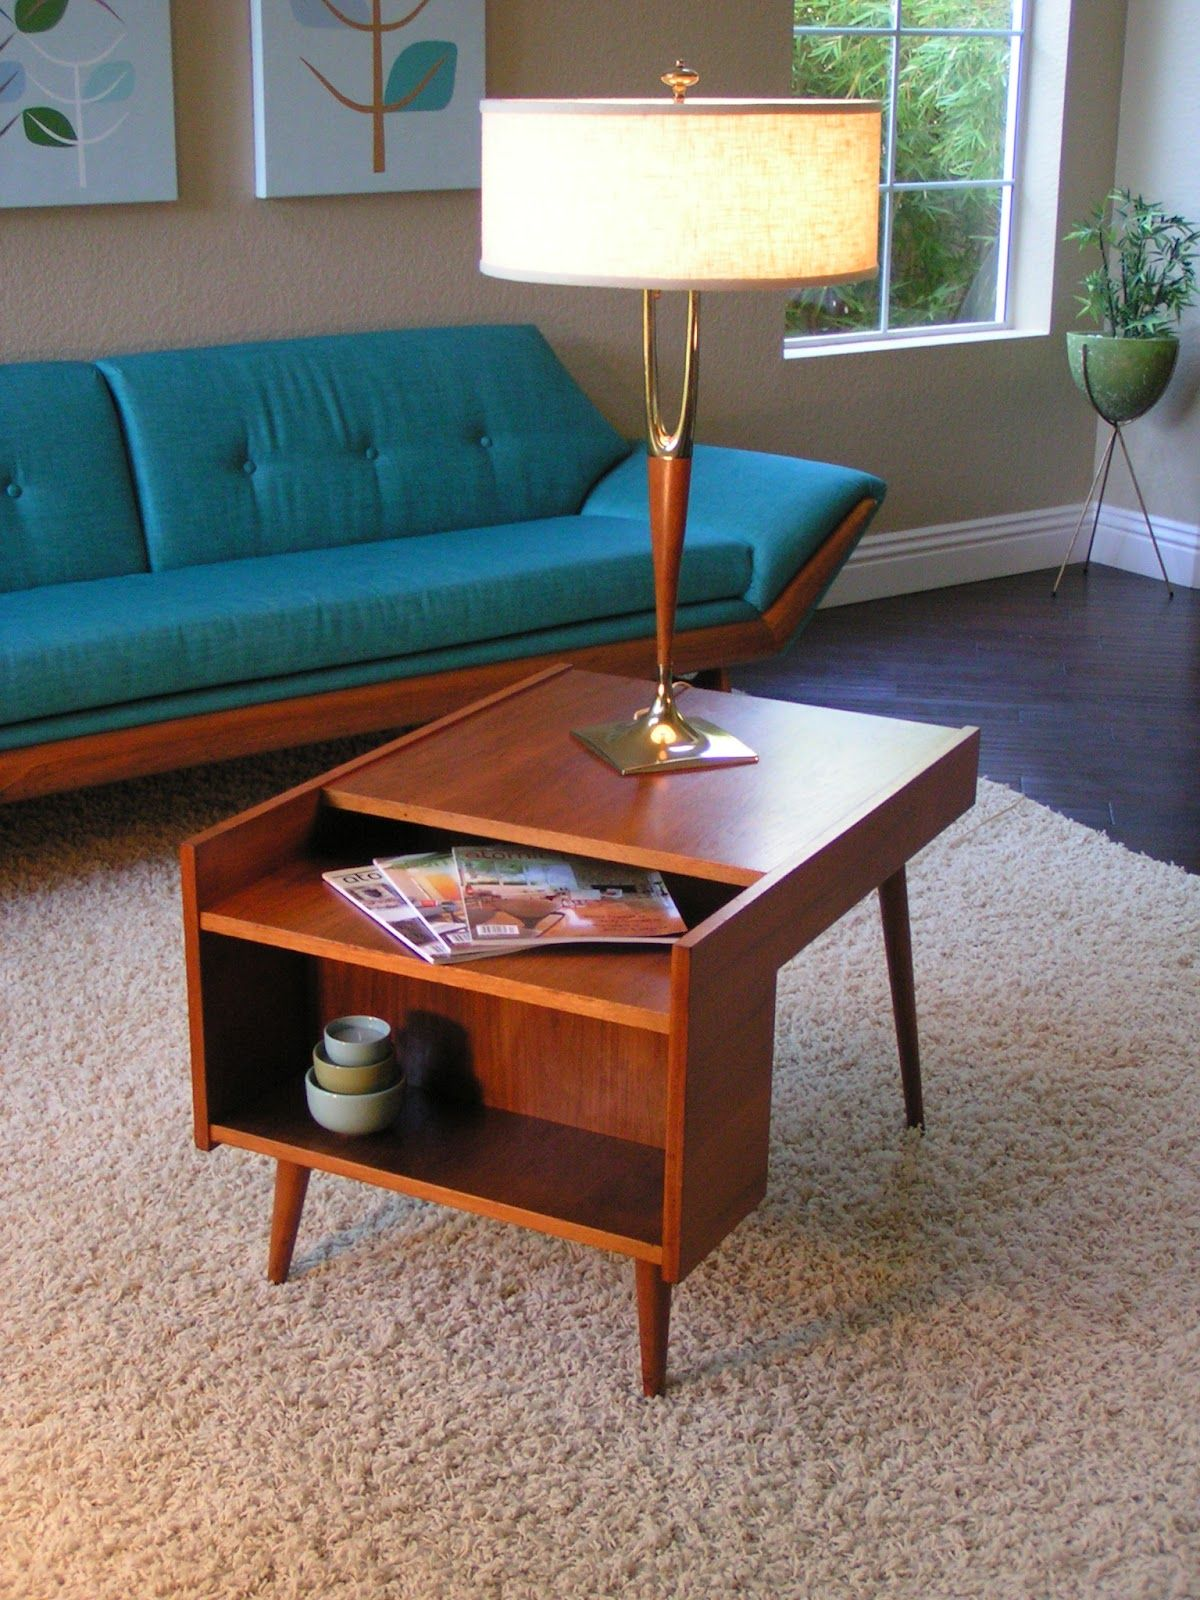 mid century sofa with fluffy rug vintage side table designed by milo baughman and manufactured by glenn of california in the early - Mid Century Modern Furniture Of The 1950s